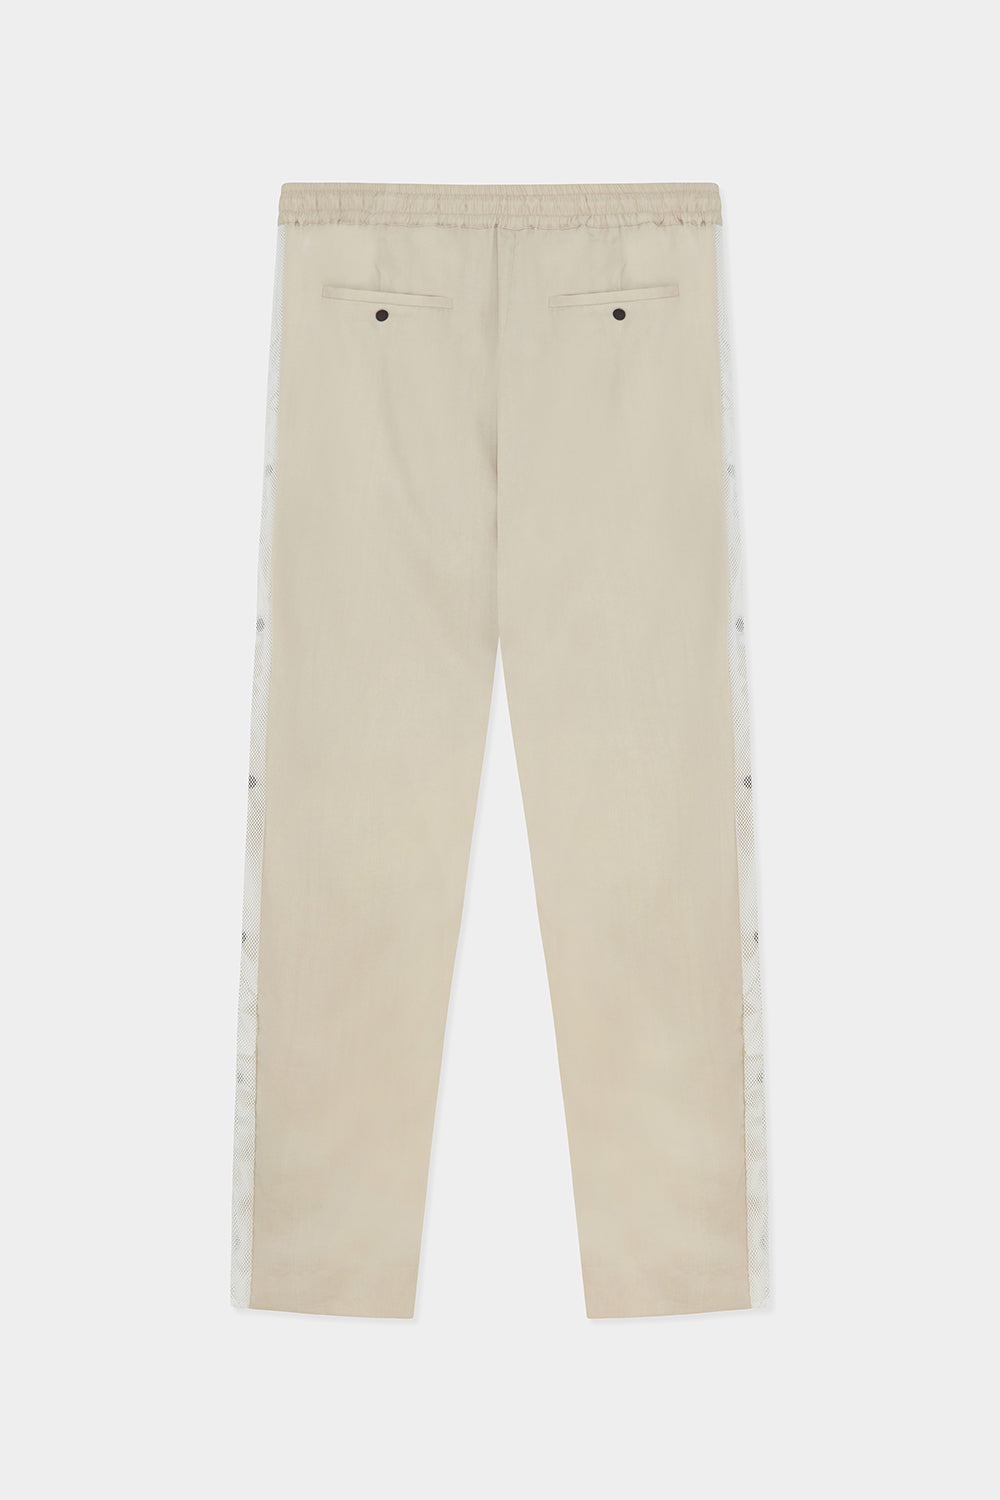 TOLIMANS TROUSERS